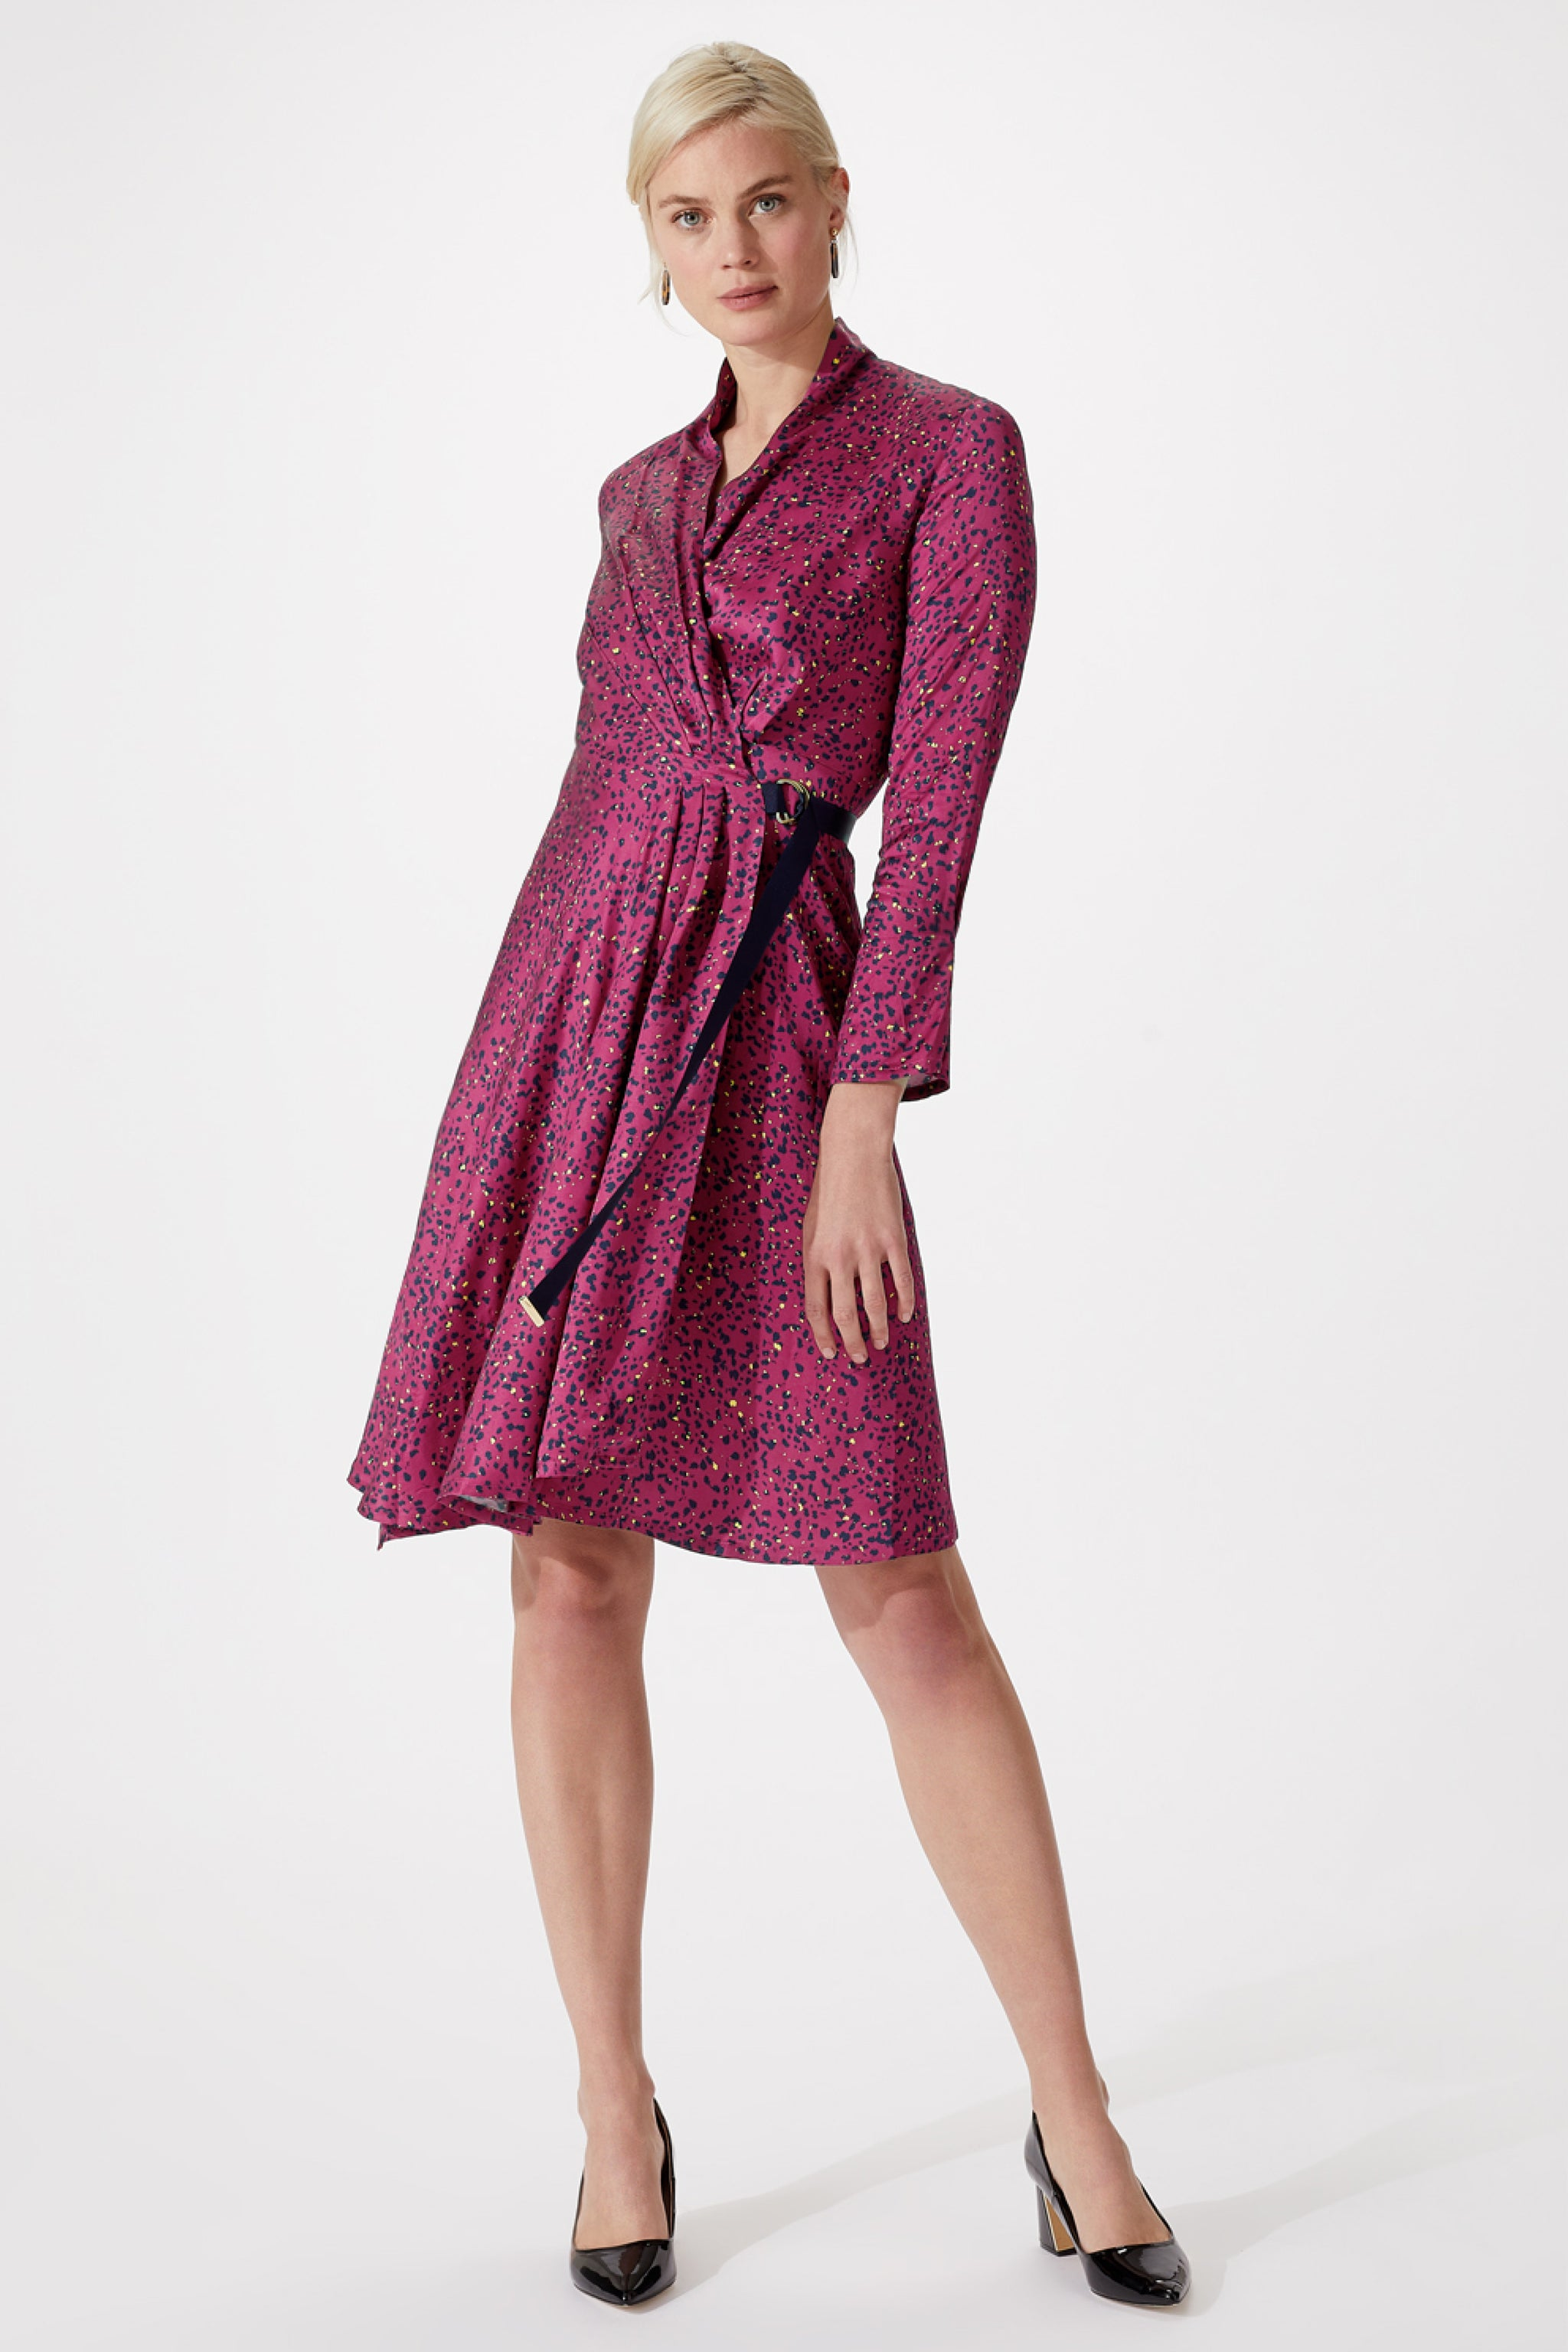 Cheyne Rosehip & Navy Spot Print Dress